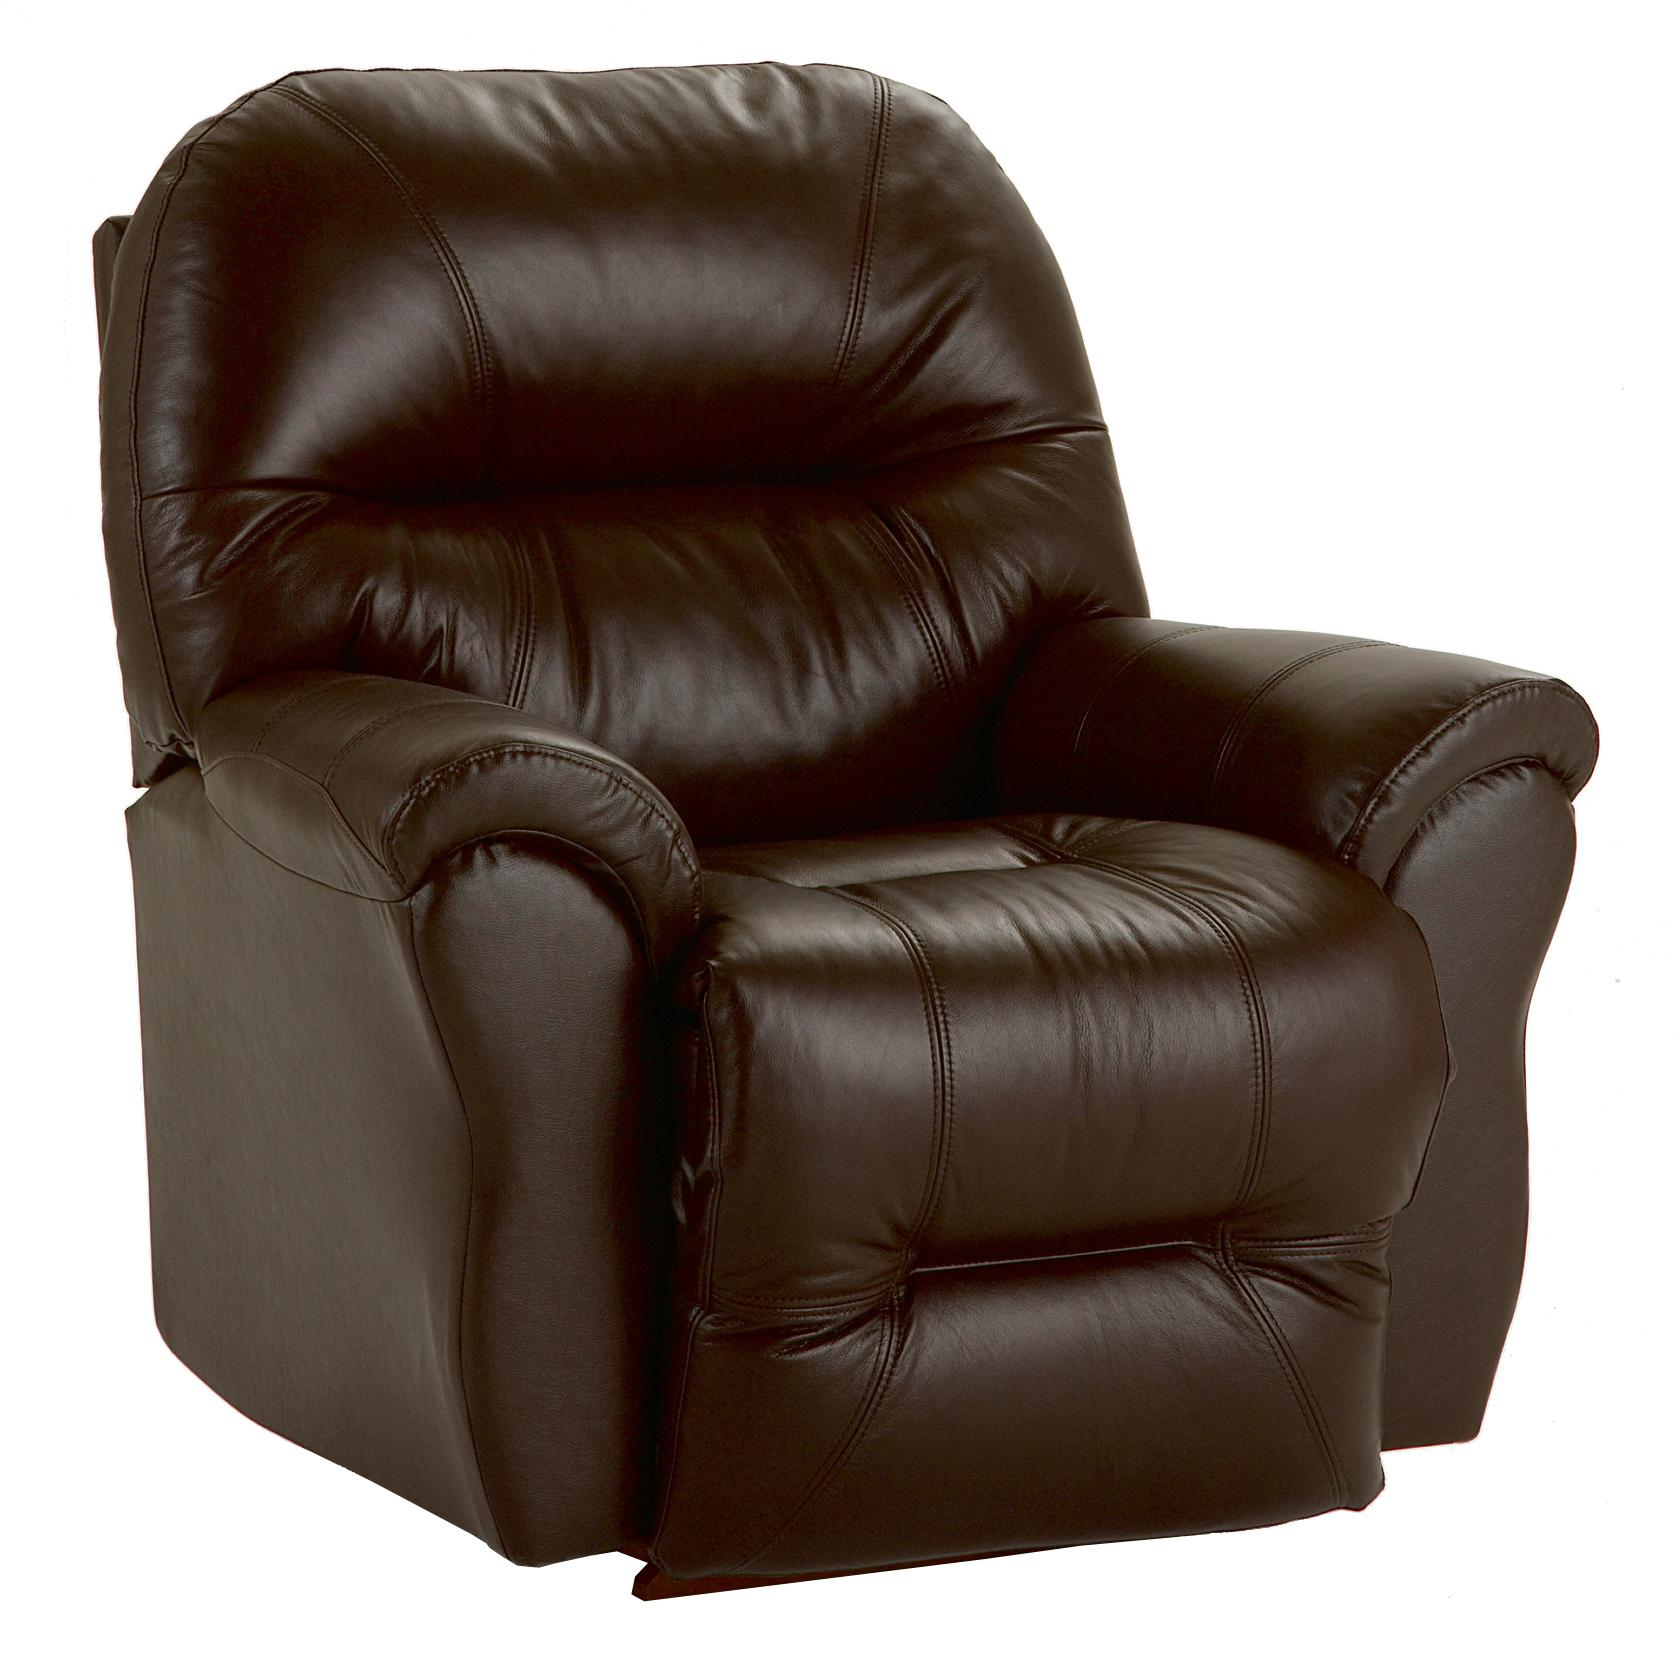 Best Home Furnishings Bodie Recliner - Item Number: 8NW14-L